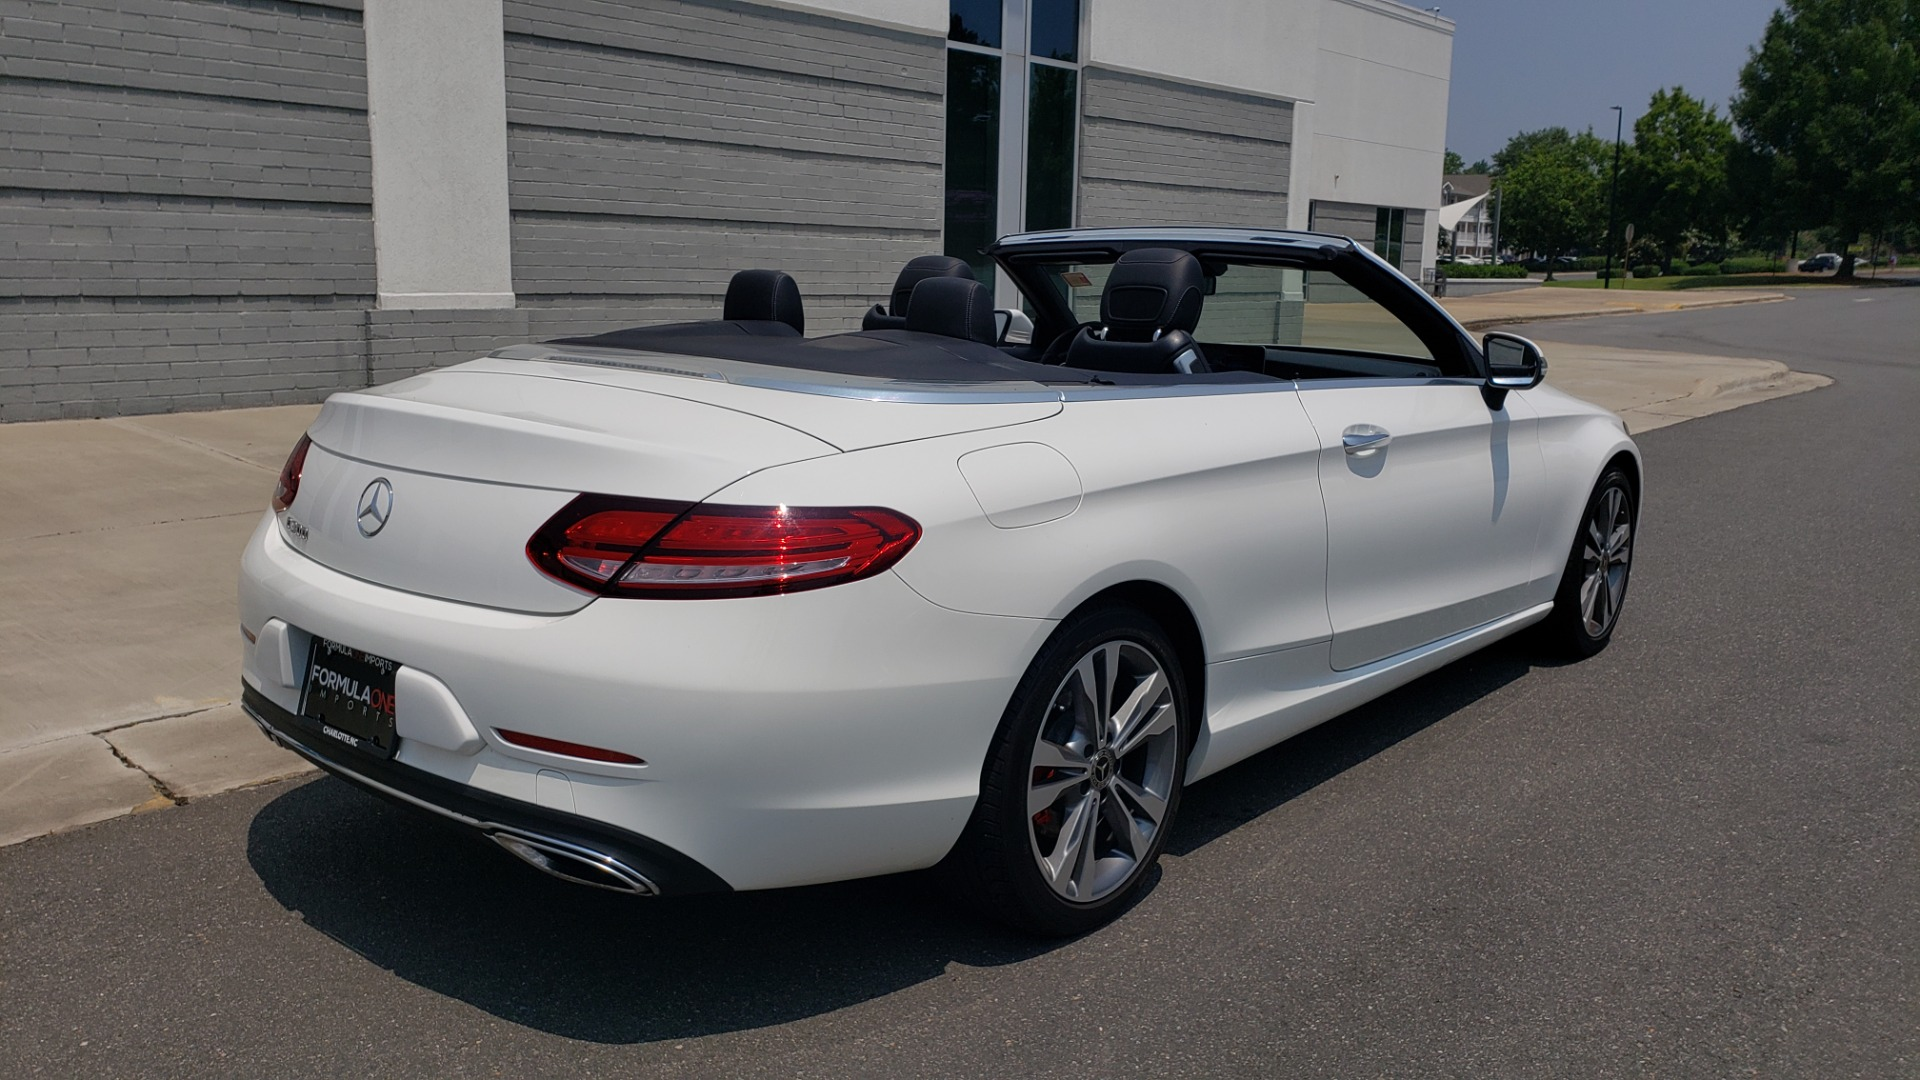 Used 2019 Mercedes-Benz C-CLASS C 300 CABRIOLET 2.0L / AUTO / NAV / HD RADIO / REARVIEW for sale $46,995 at Formula Imports in Charlotte NC 28227 4